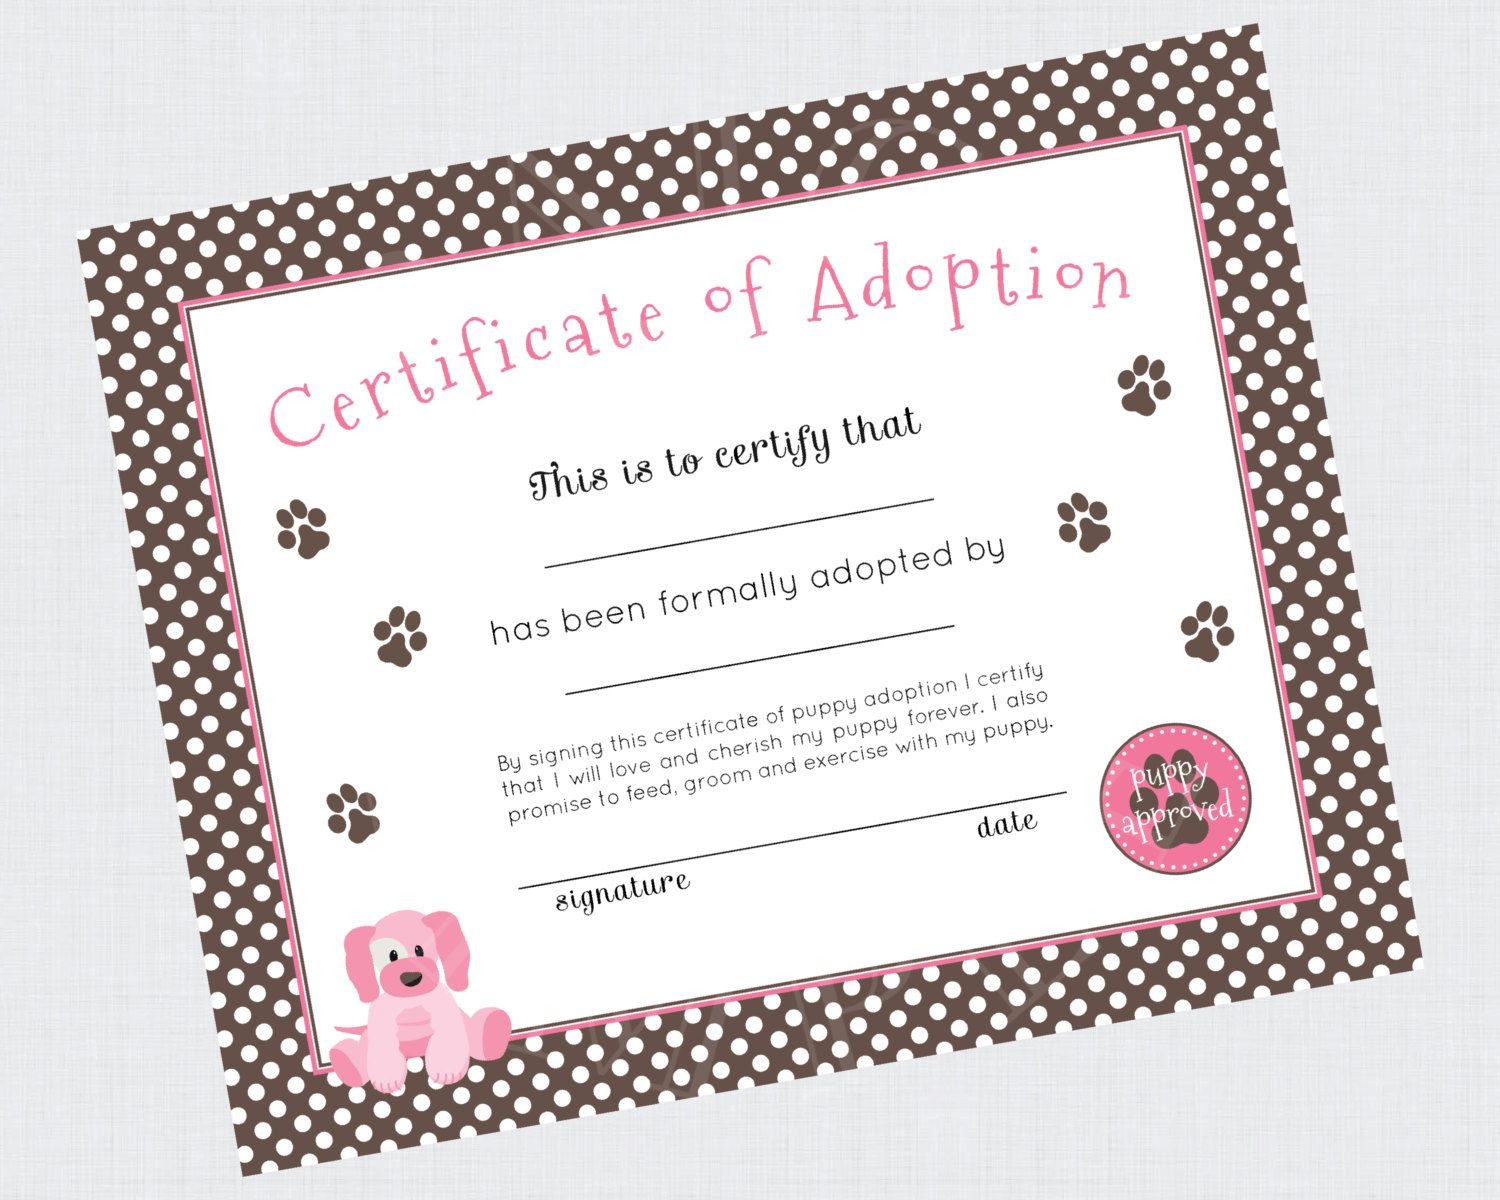 Printable adoption certificate from the puppy paw ty collection by printable adoption certificate from the puppy paw ty collection by paige simple via etsy xflitez Gallery